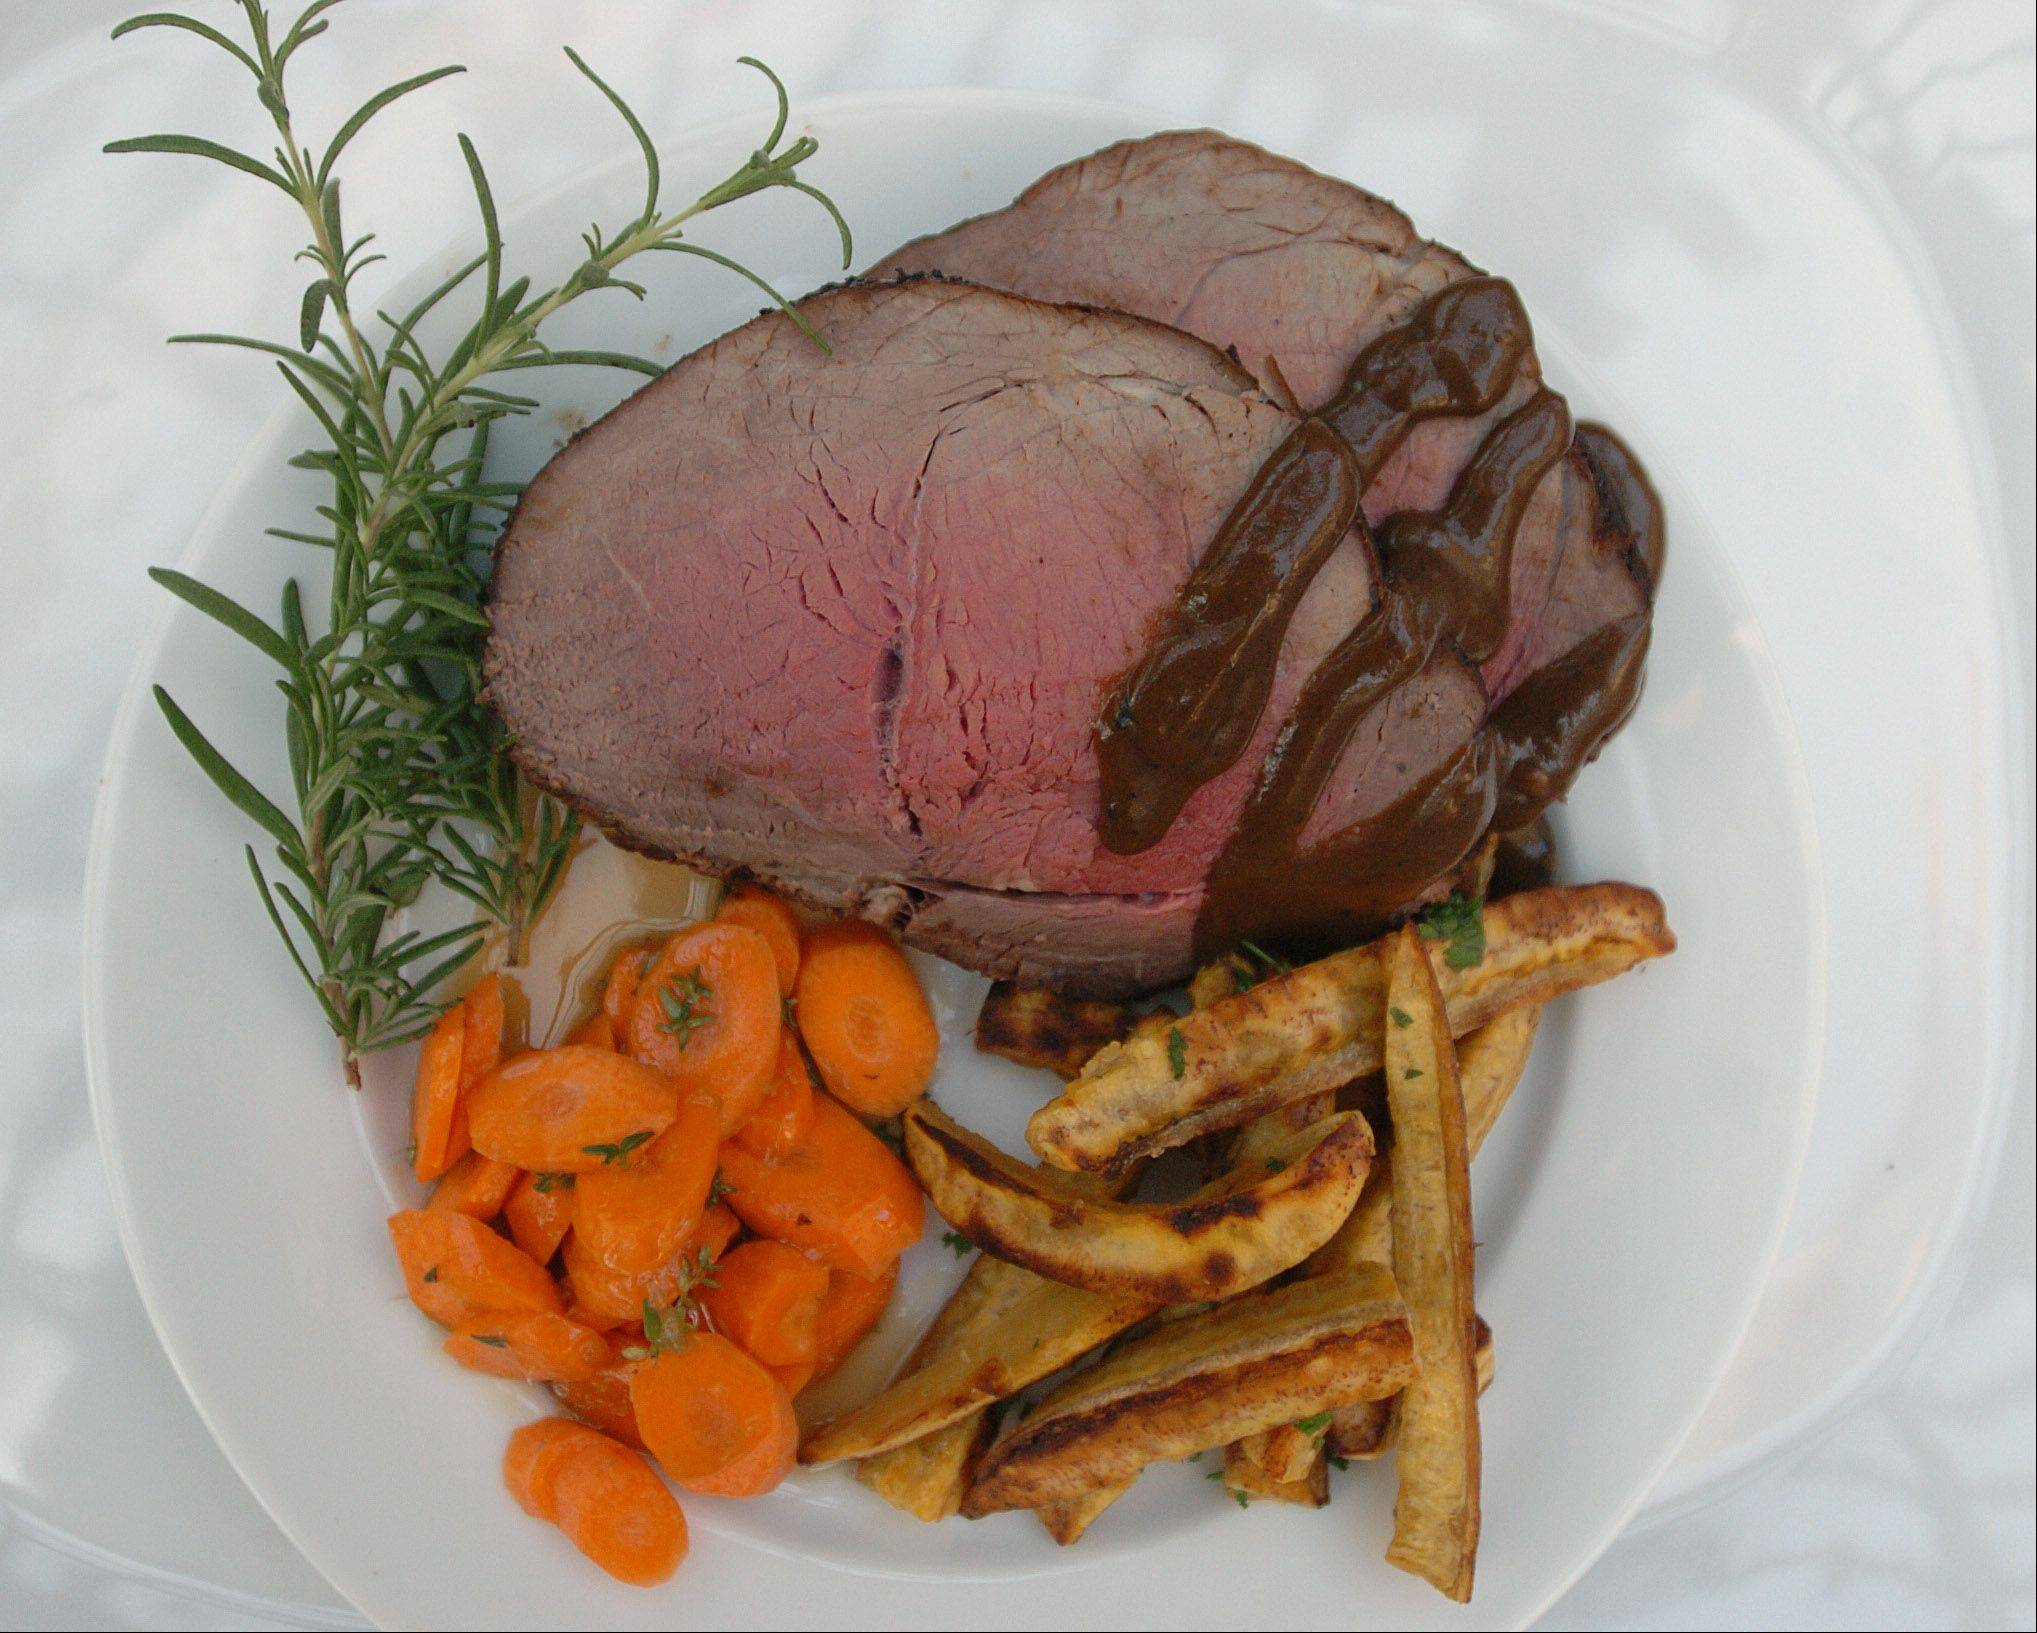 Terri Edmunds created an espresso-coffee glaze for a roasted sirloin tip. She serves it with plantain fries and citrus-glazed carrots.